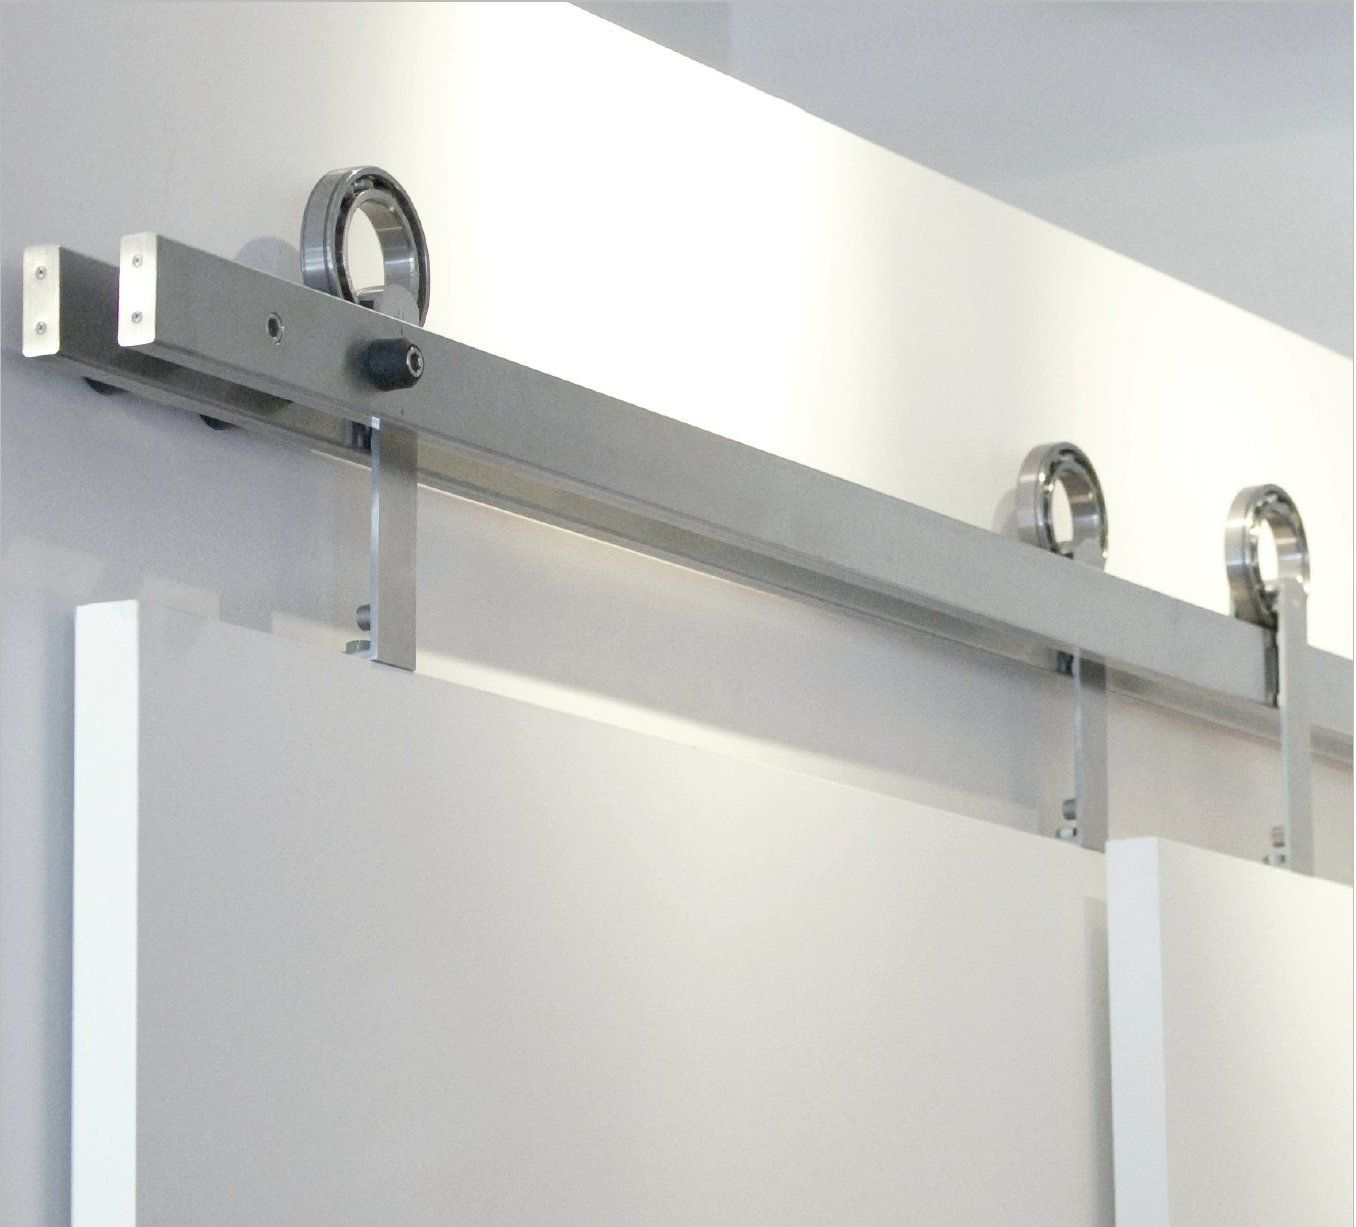 Wall mount sliding door hardware set - Sliding Doors Rail With Tubular Bypass Track Railing Doors System With Double White Hanging Gypsum As A Bedroom Door Ideas Cool Sliding Doors Rail System